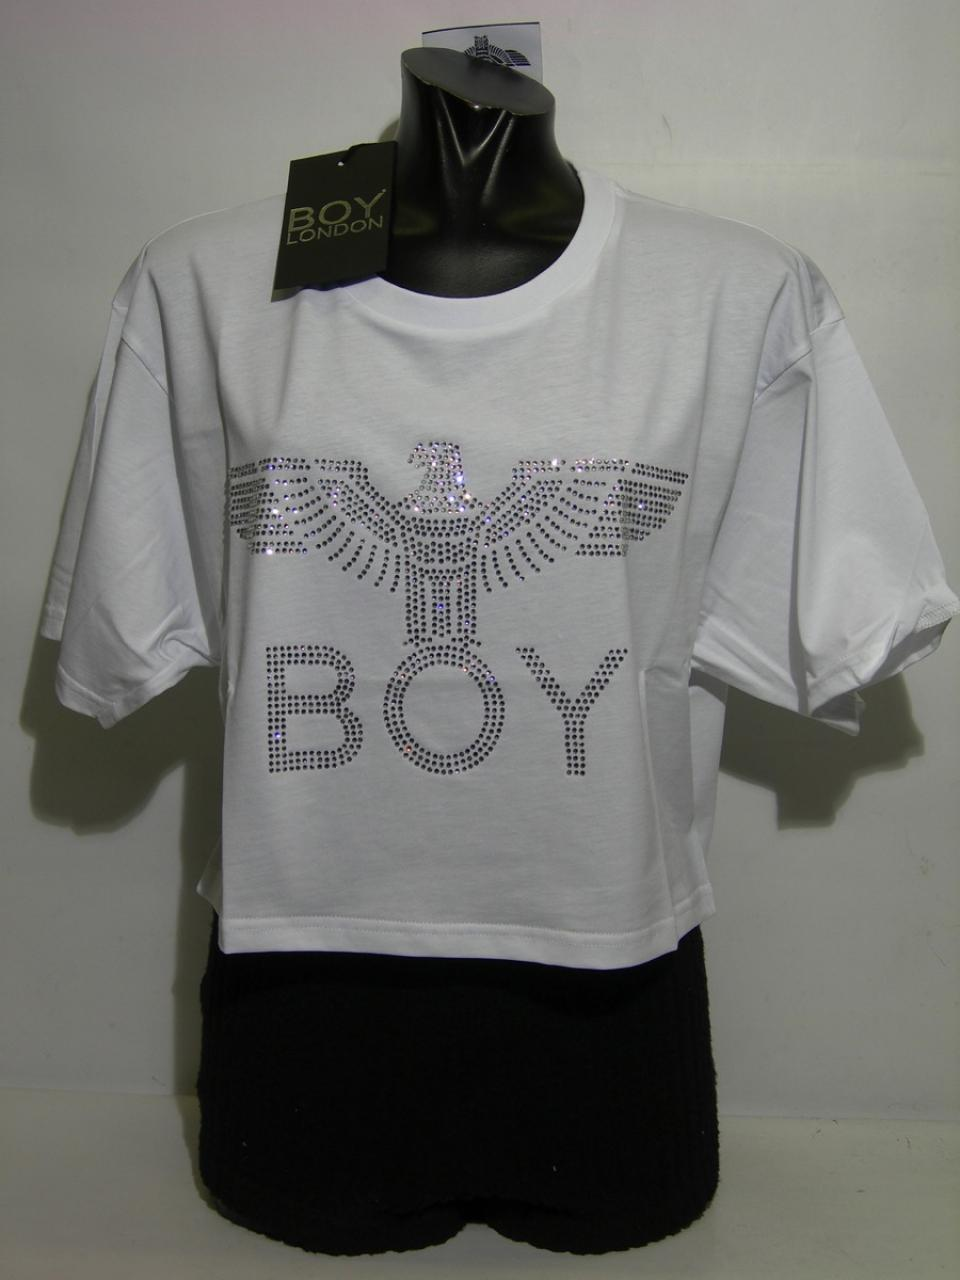 BOY LONDON BL1282-Boy London 9663-13.11-